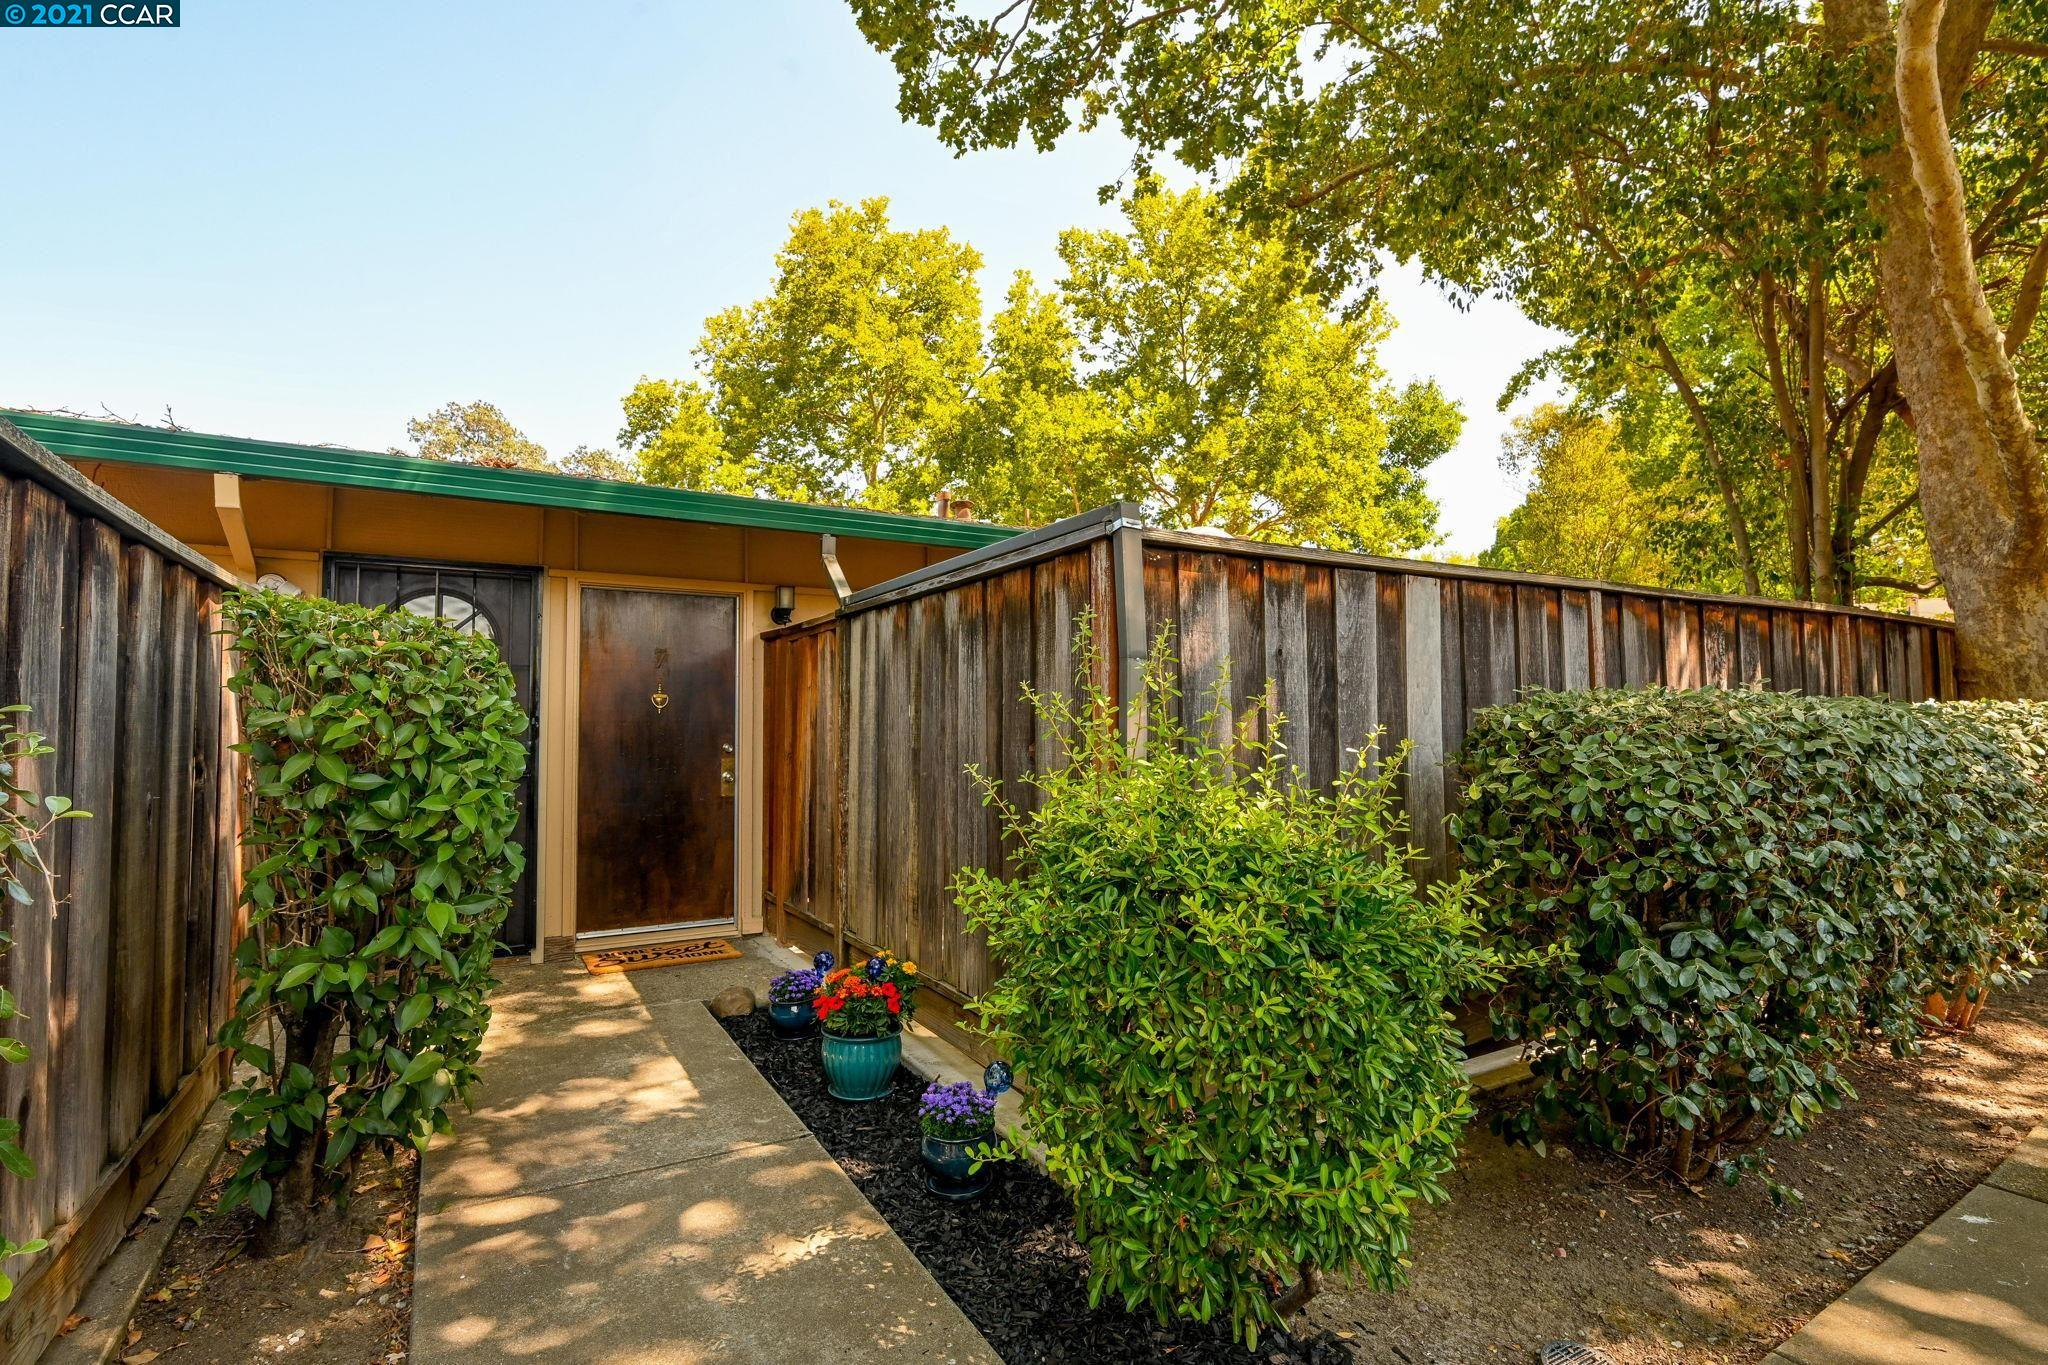 PRICE REFRESHED! OPEN HOUSE Saturday, 9/11 11am-1pm. Here is your chance to enjoy the benefits of living in the delightful City of Walnut Creek! You'll love living in this darling, ideally located single-level condo. It's nestled toward the center of a quaint and quiet complex of only 40 units, featuring mature landscaping and a sparkling swimming pool. Enjoy fresh new carpet and paint while gazing out a 12-foot-wide slider leading to a spacious and private patio, great for entertaining and relaxation. Other features include plenty of closet space, an outdoor storage closet, inside laundry potential, a covered parking space, and an extra storage unit in the carport area. In addition to access to top-rated schools, shopping, entertainment, restaurants, and recreation, the home is adjacent to Iron Horse Trail and within walking distance to Pleasant Hill and Walnut Creek BART stations.